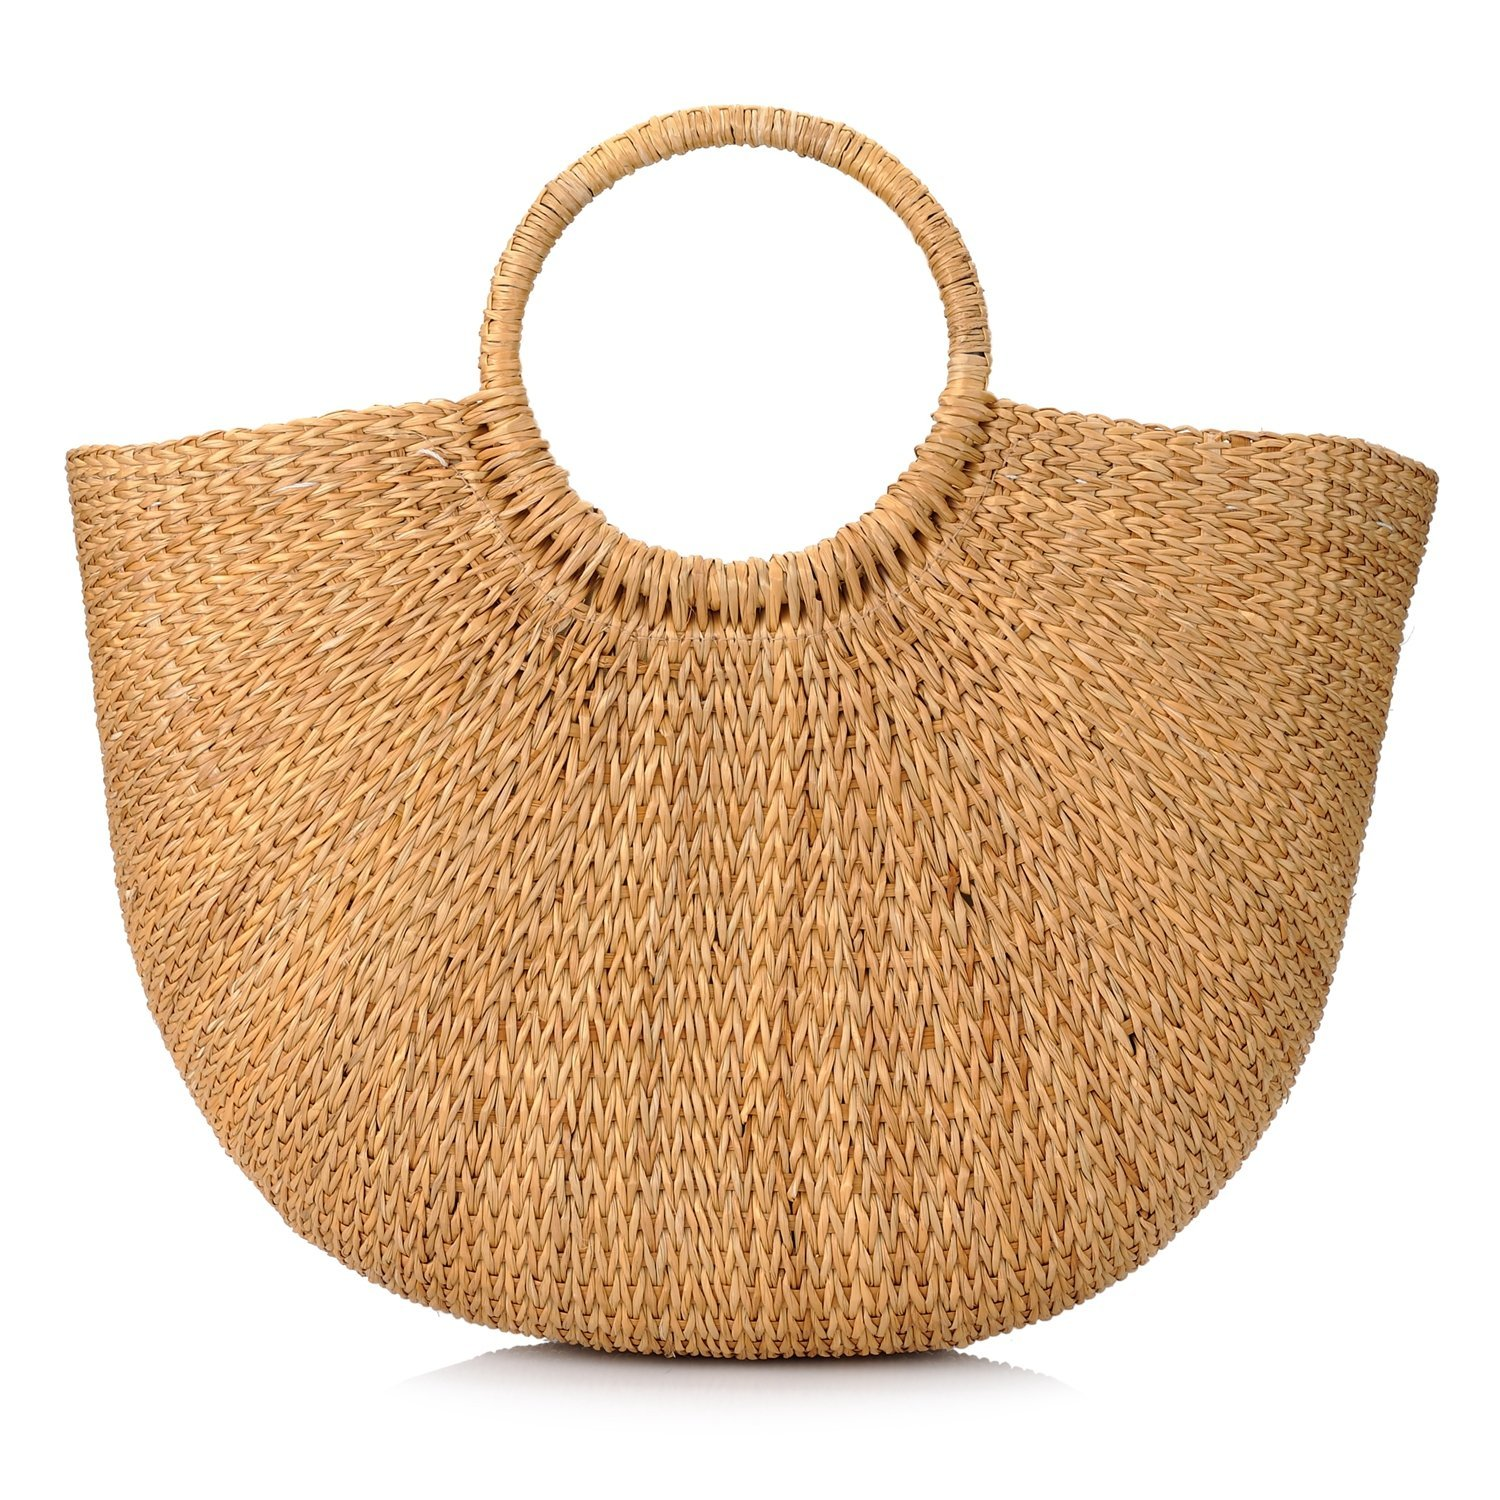 Natural Chic Hand-woven Round Handle Ring Straw Tote Retro Large Casual Summer Women Beach Handbags